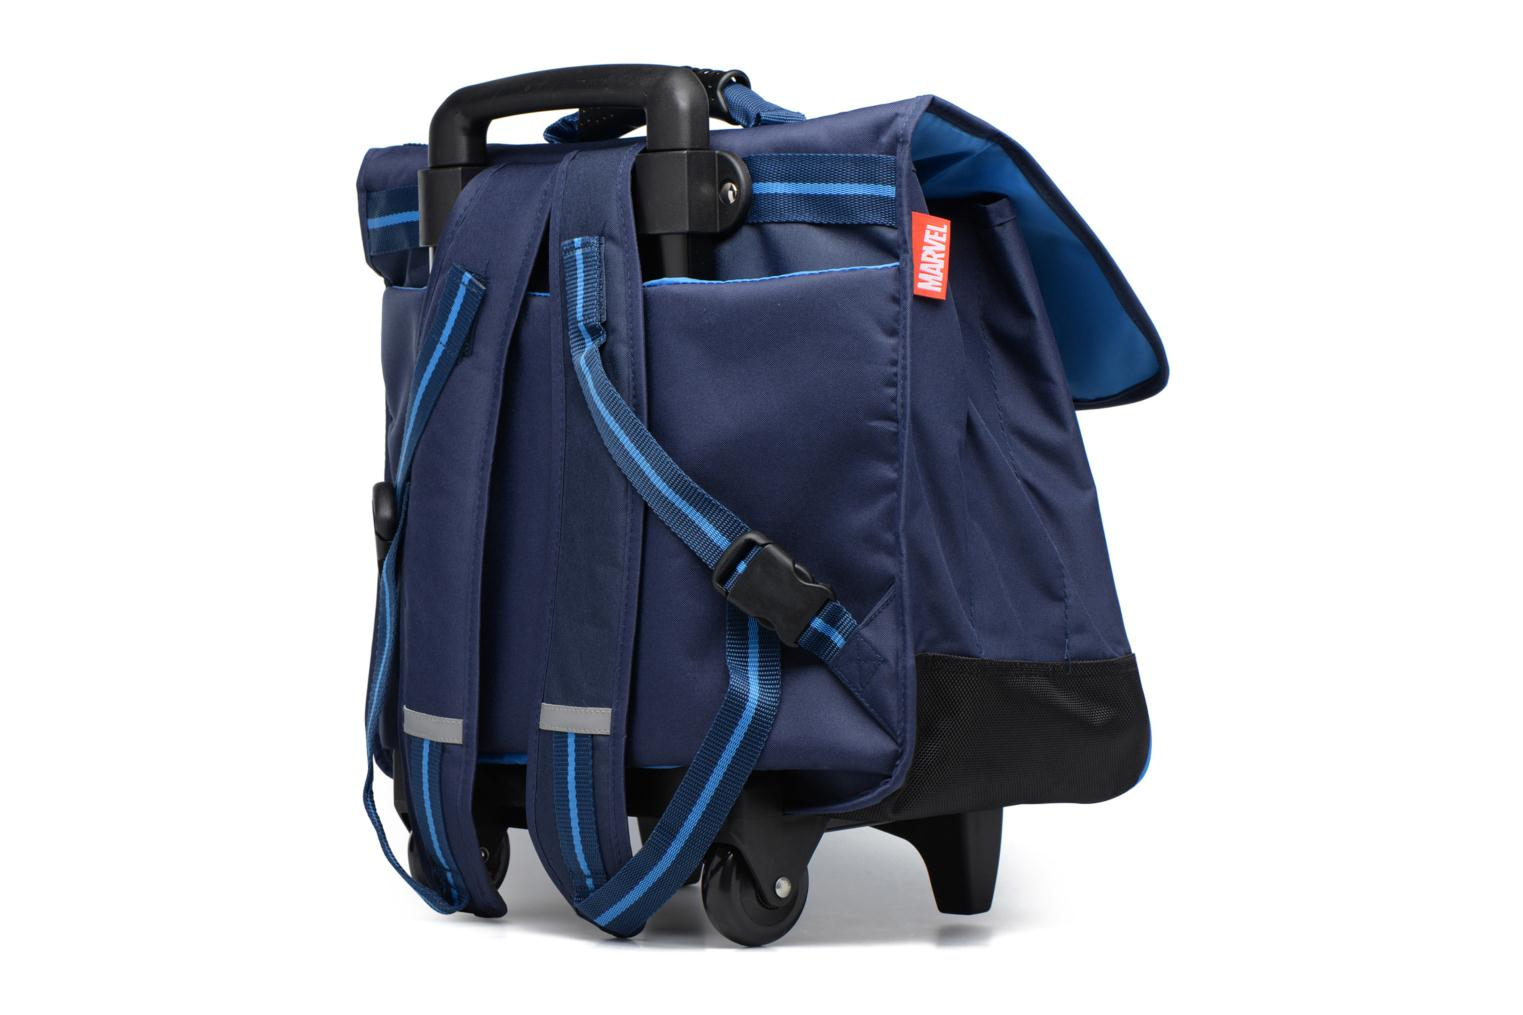 Cartable 41cm Trolley Bleu